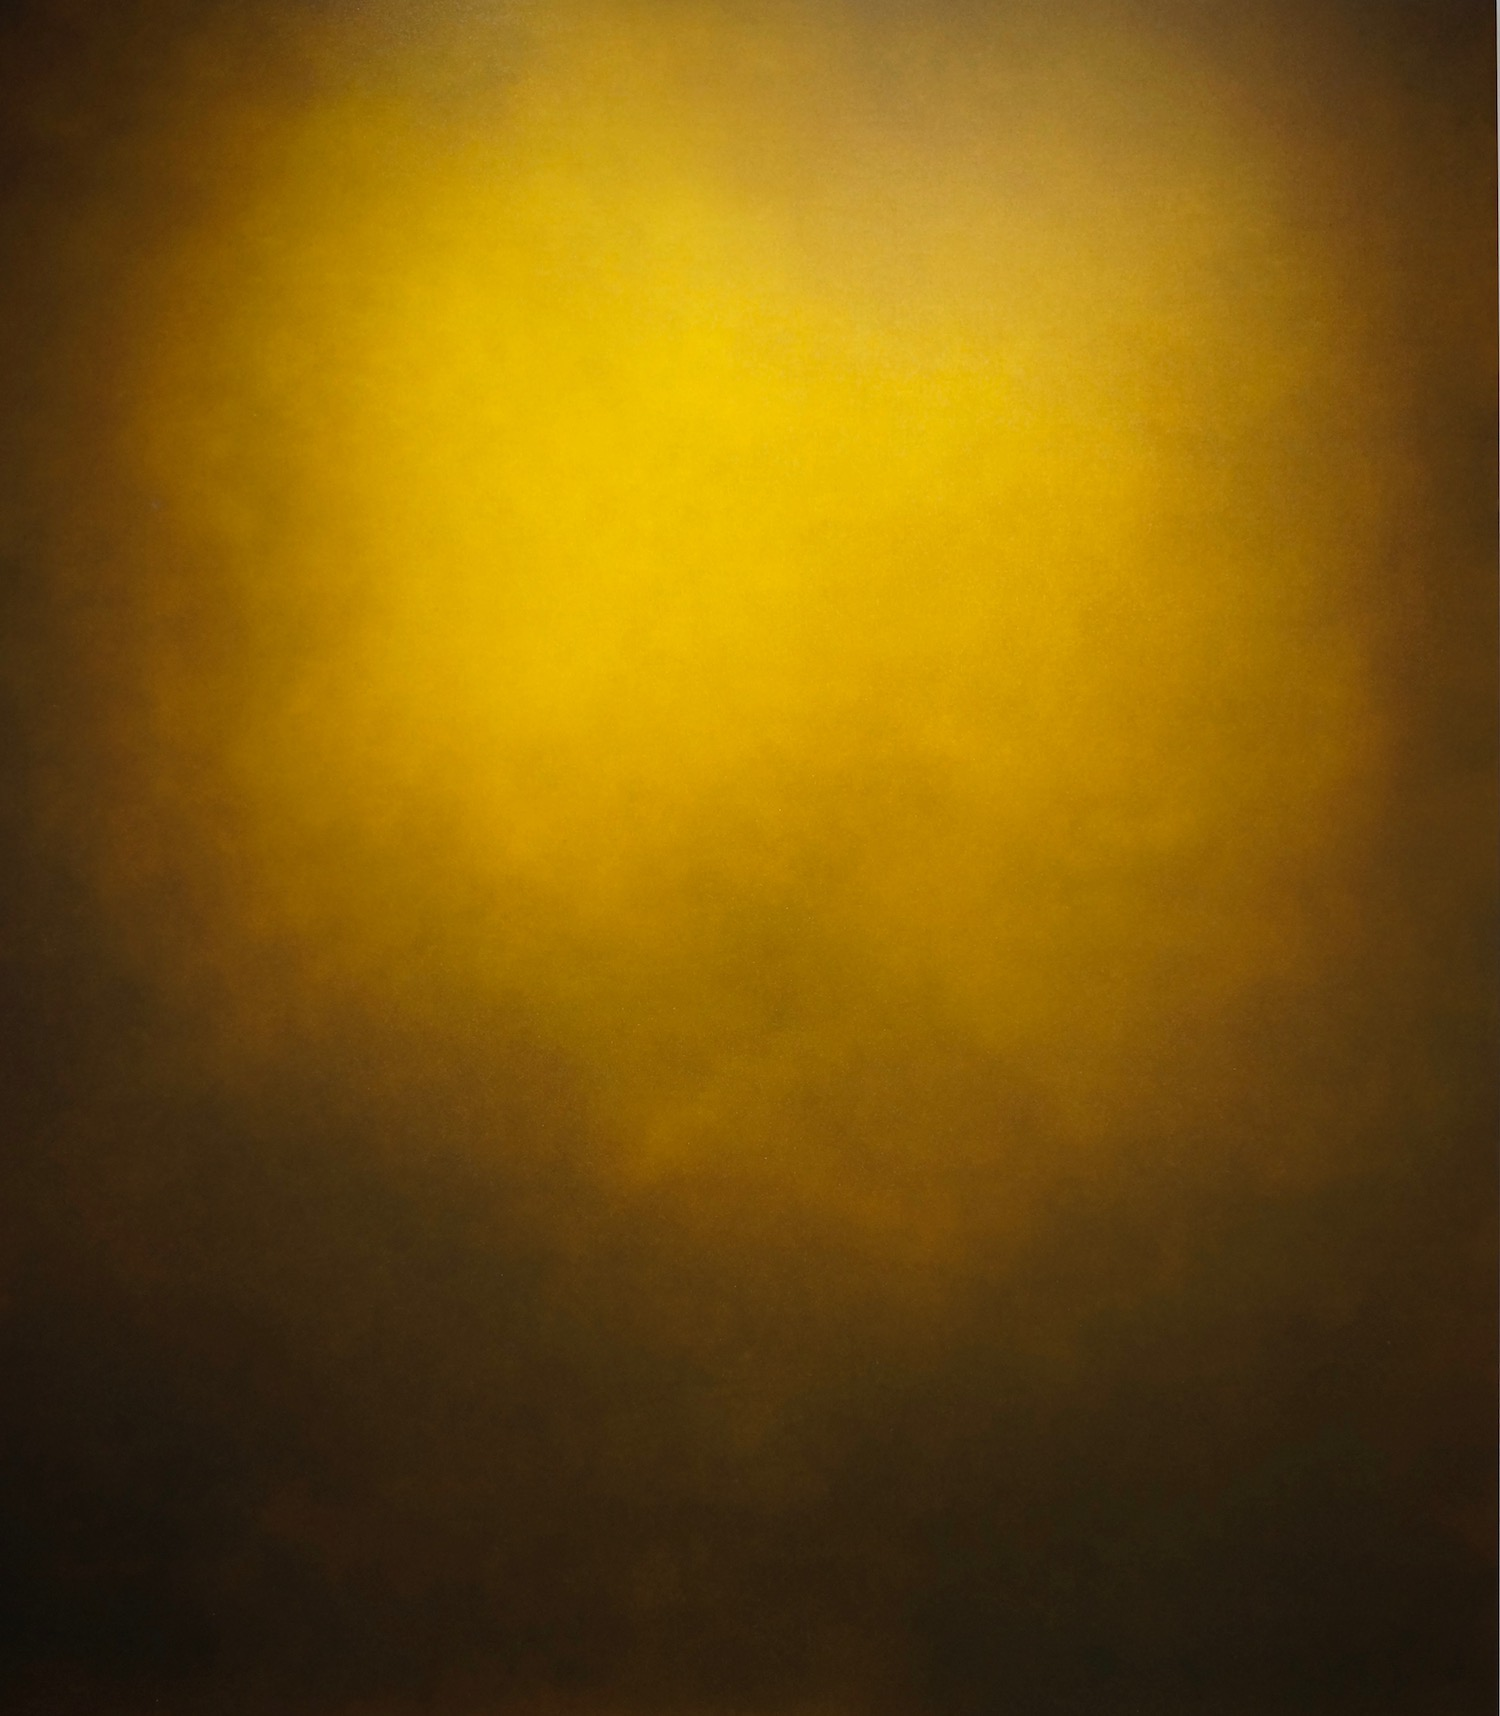 Magnus Thorén untitled, 2017 oil on canvas 190 x 170 cm | 74 3/4 x 67 in MTH/M 58